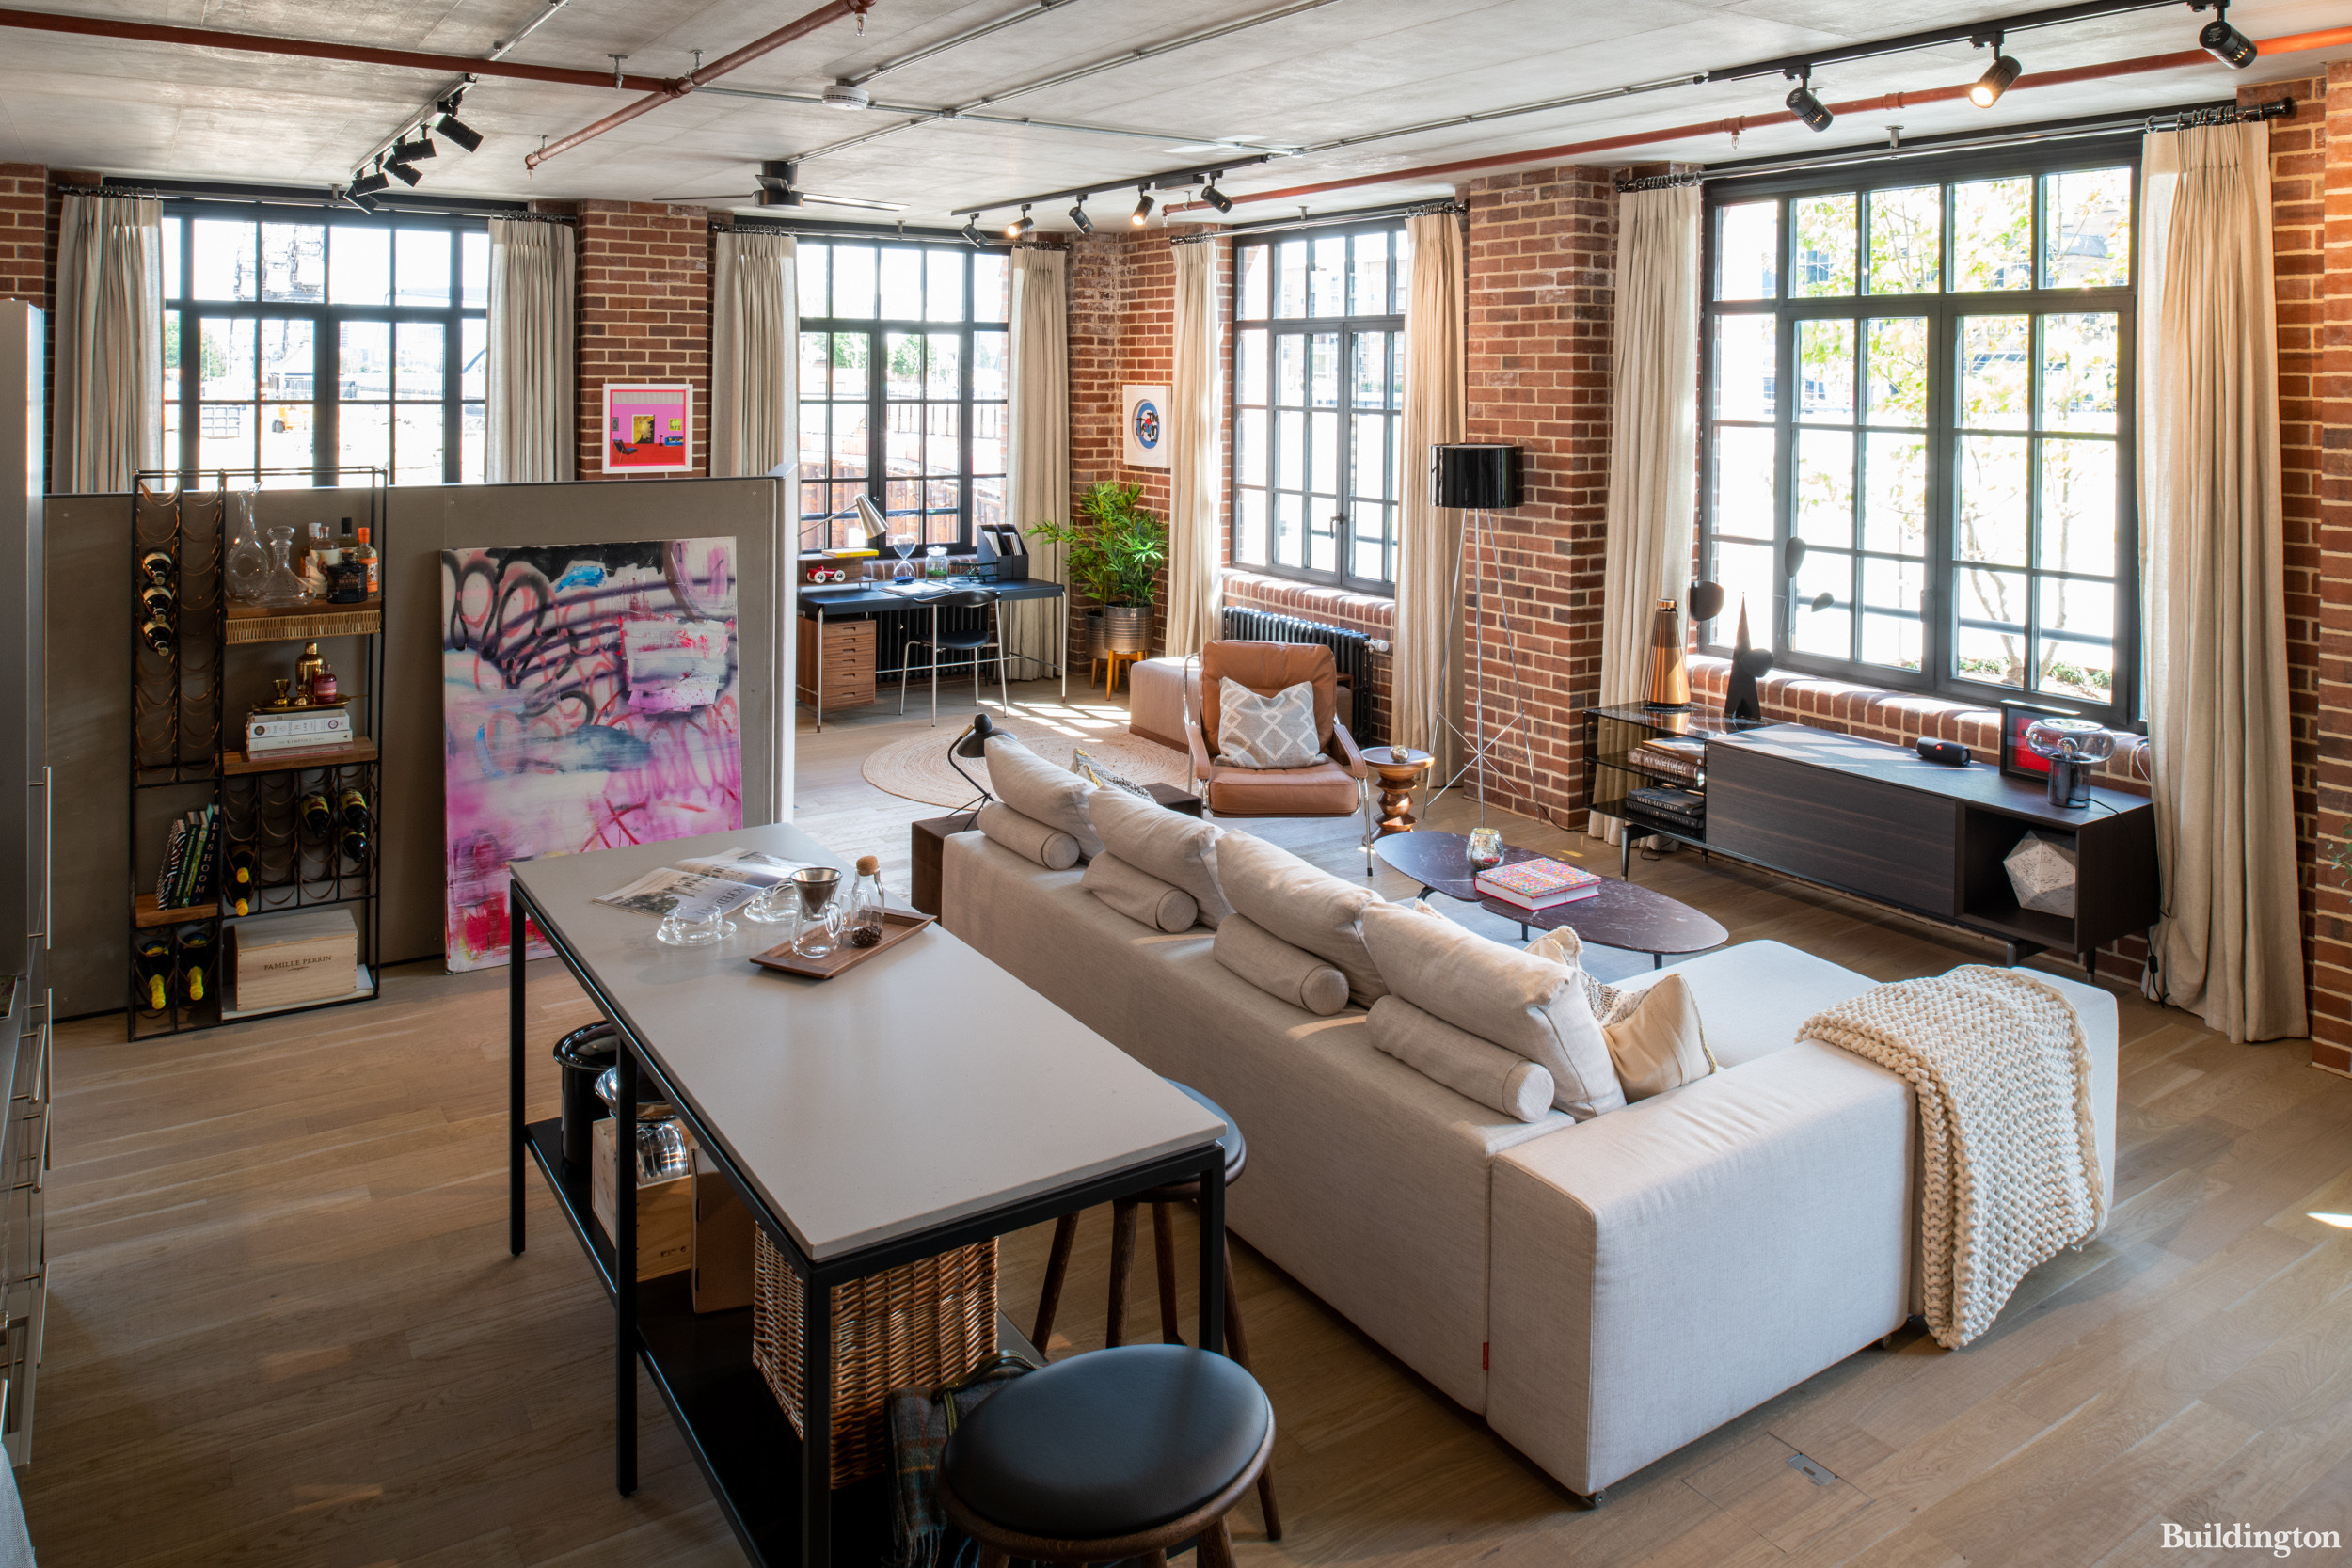 Interior at 8 Harbord Square. The collection of Manhattan loft style homes are completely open-plan with no physical rooms or internal walls.